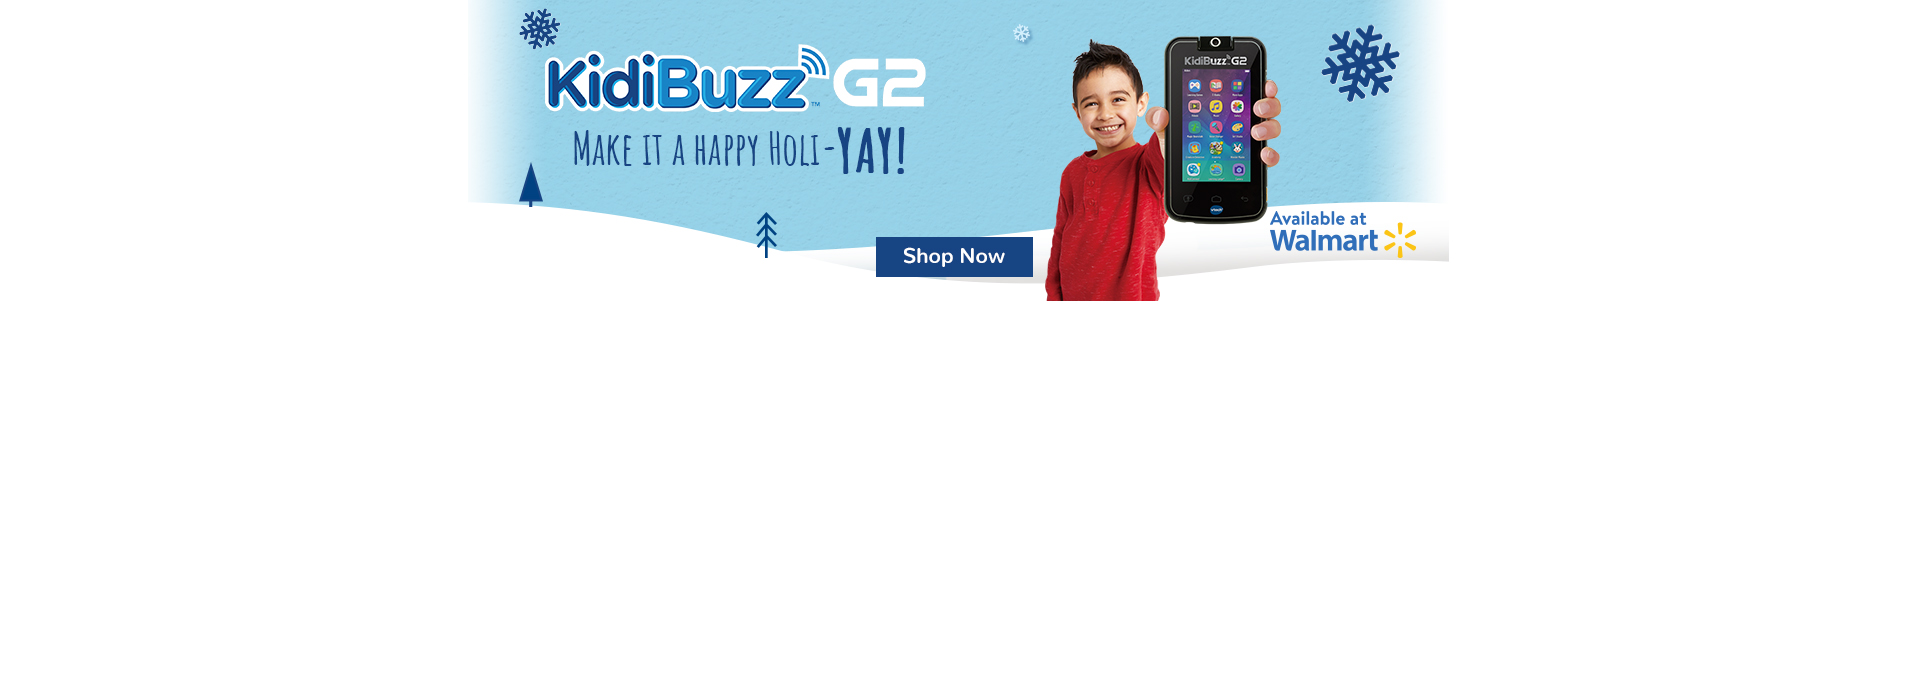 KidiBuzz G2 - Buy Now at Walmart